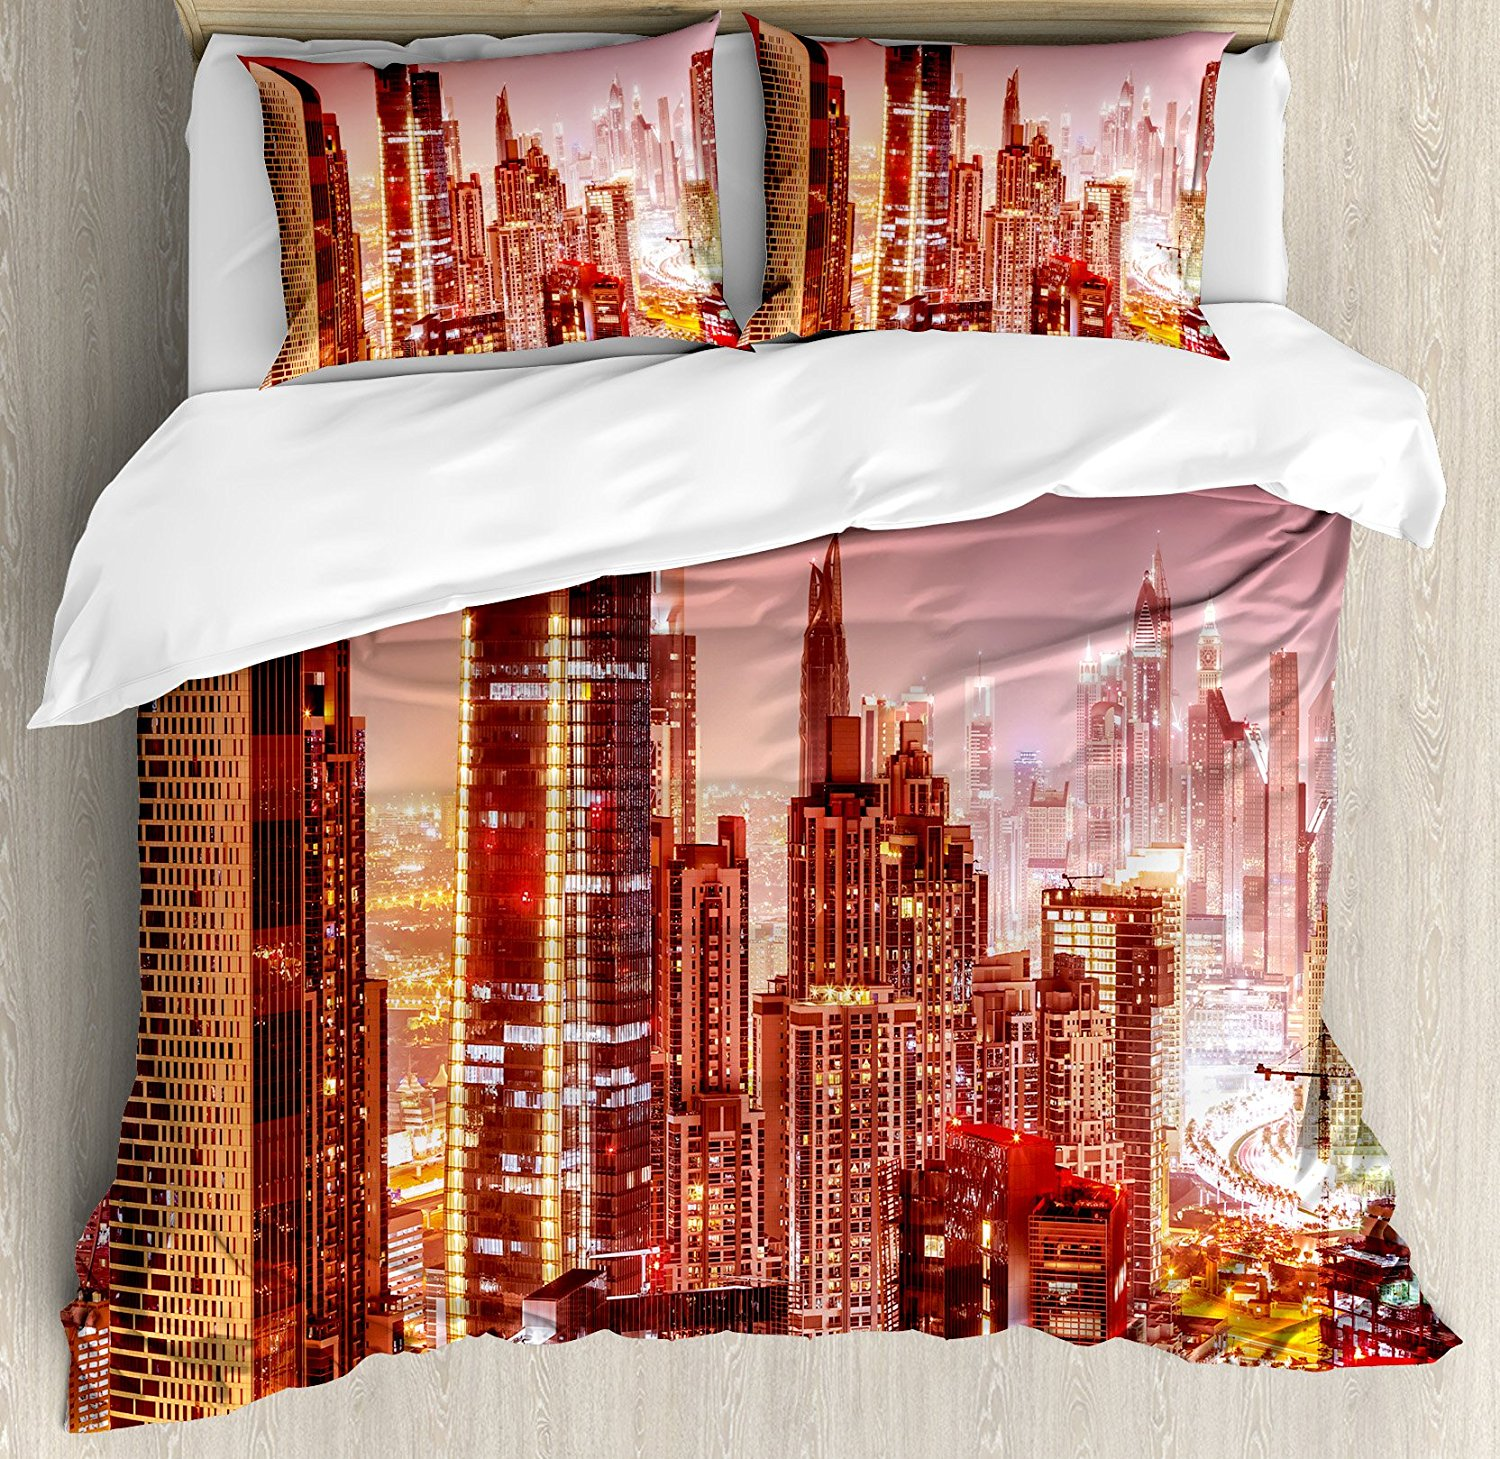 Cityscape Duvet Cover Set Dubai at Night Cityscape with Tall Skyscrapers Panorama Picture Arabian Peninsula Bedding Set